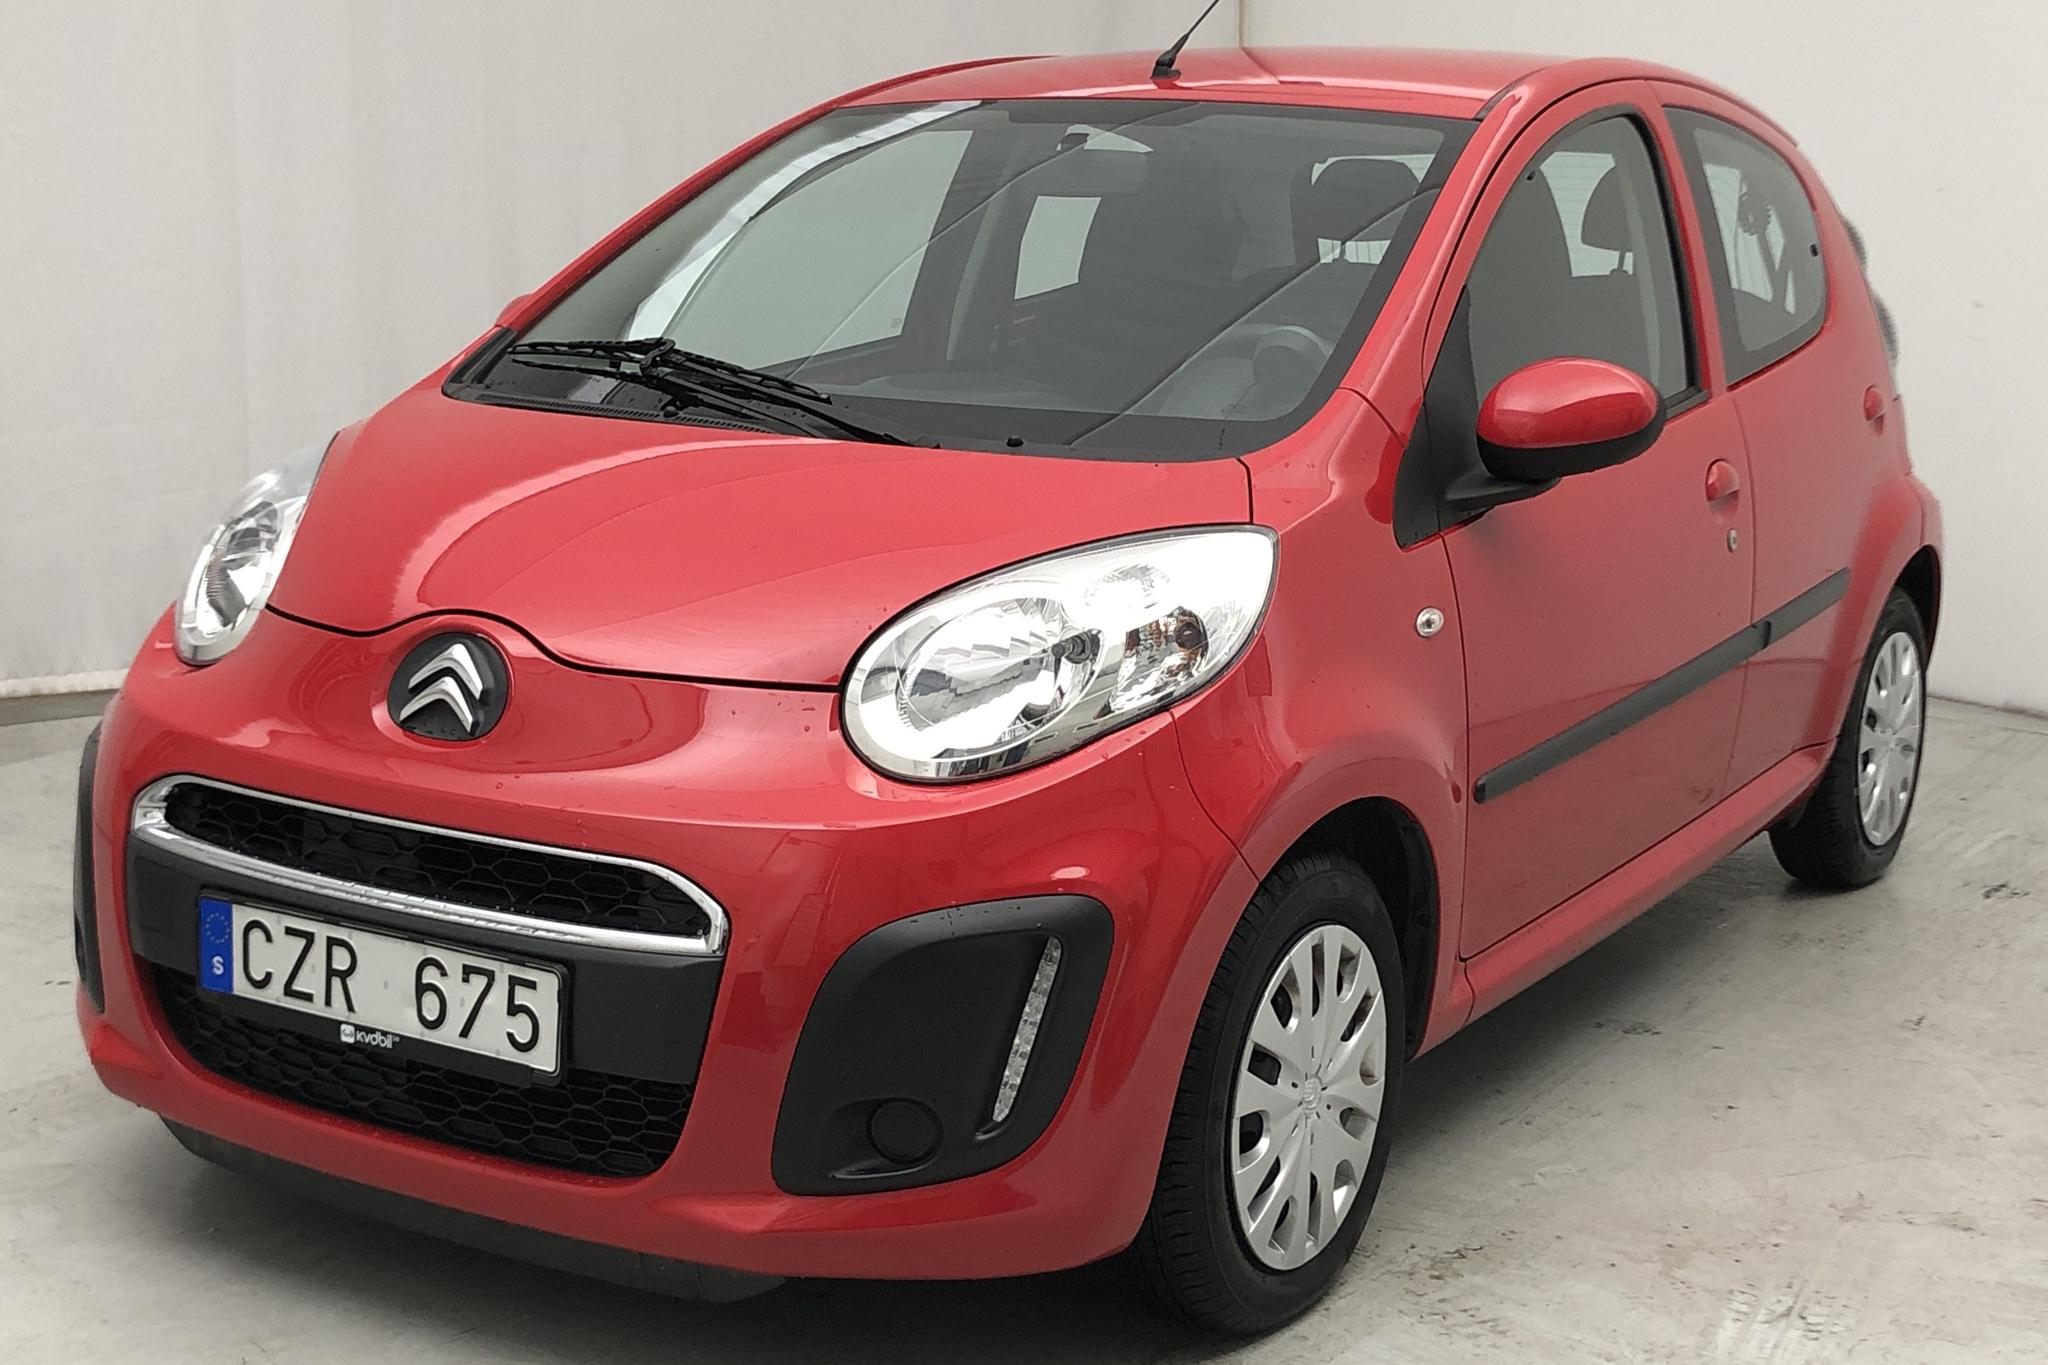 Citroen C1 1.0 5dr (68hk) - 29 807 km - Manual - red - 2013